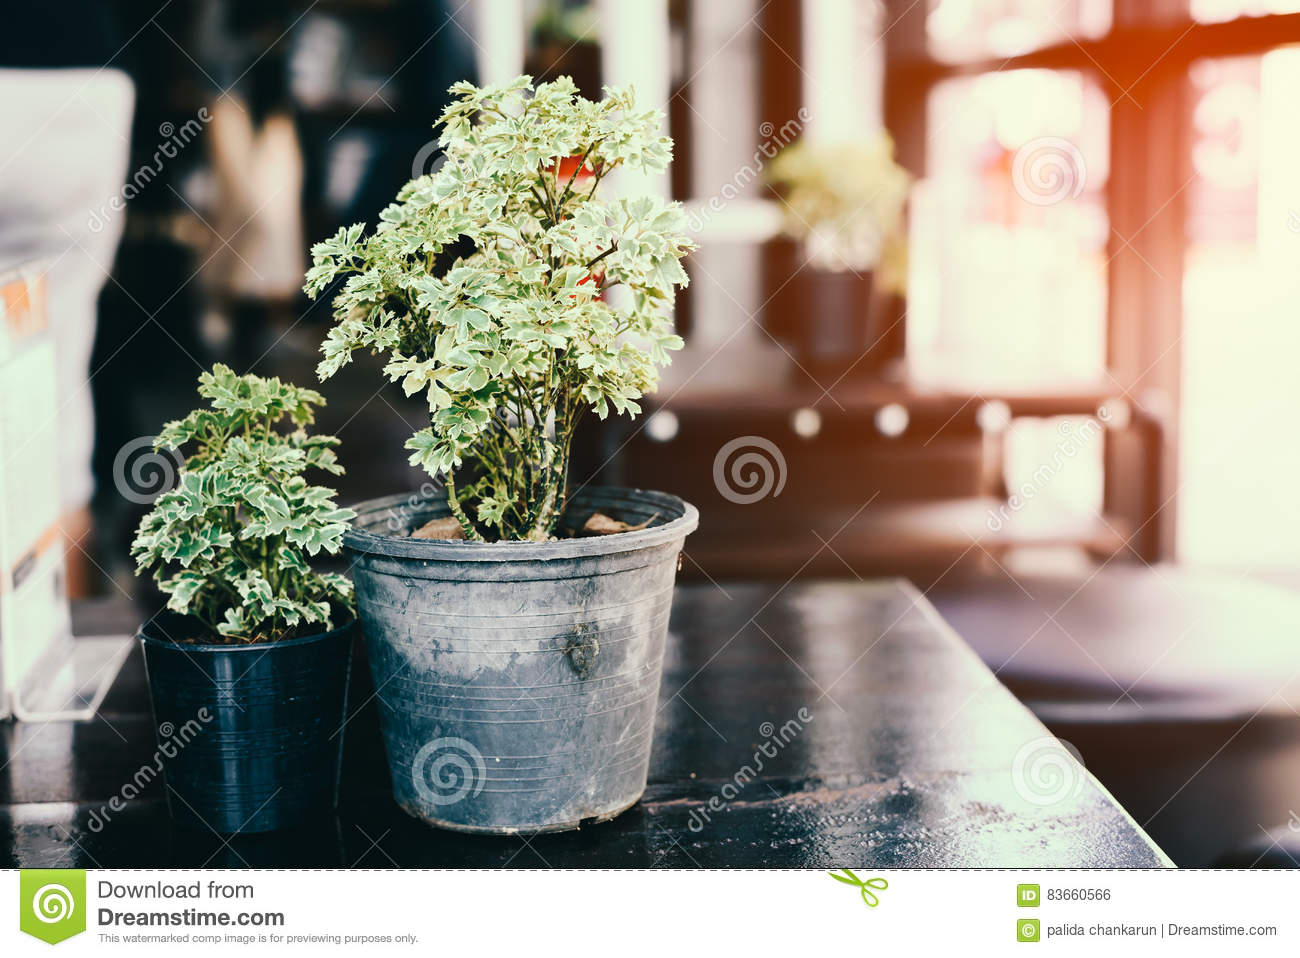 Flower pot on the table.